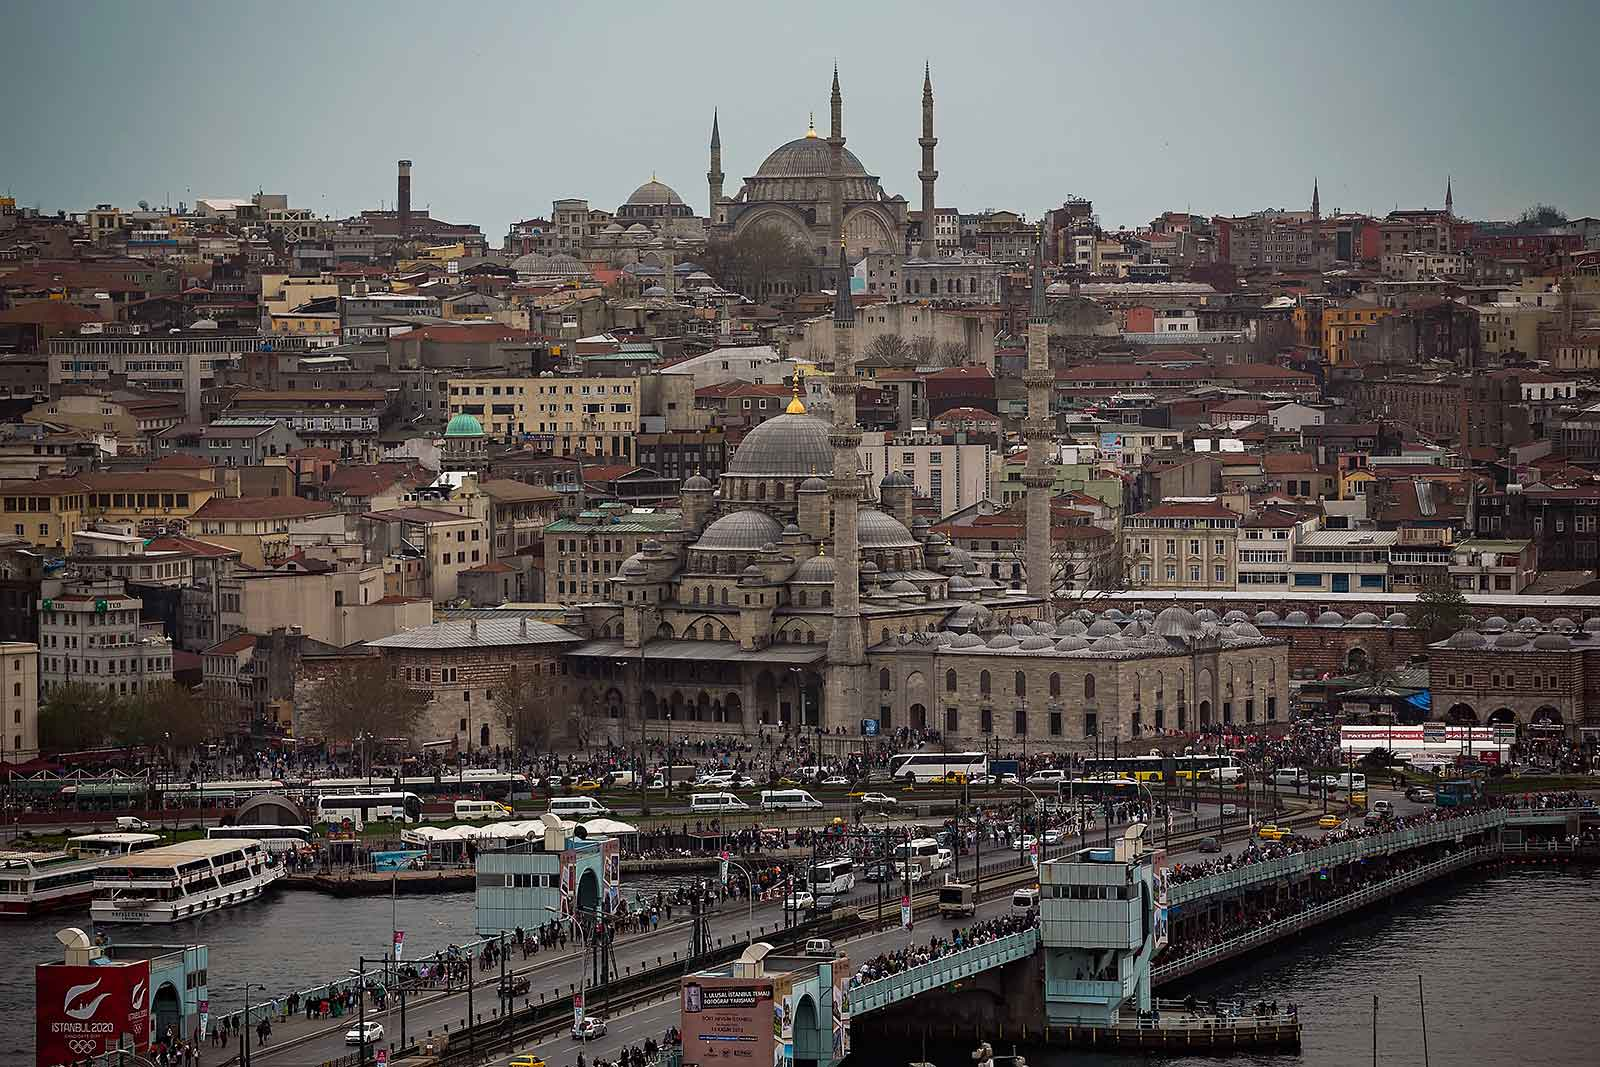 roof-top-terrace-view-new-mosque-istanbul-turkey